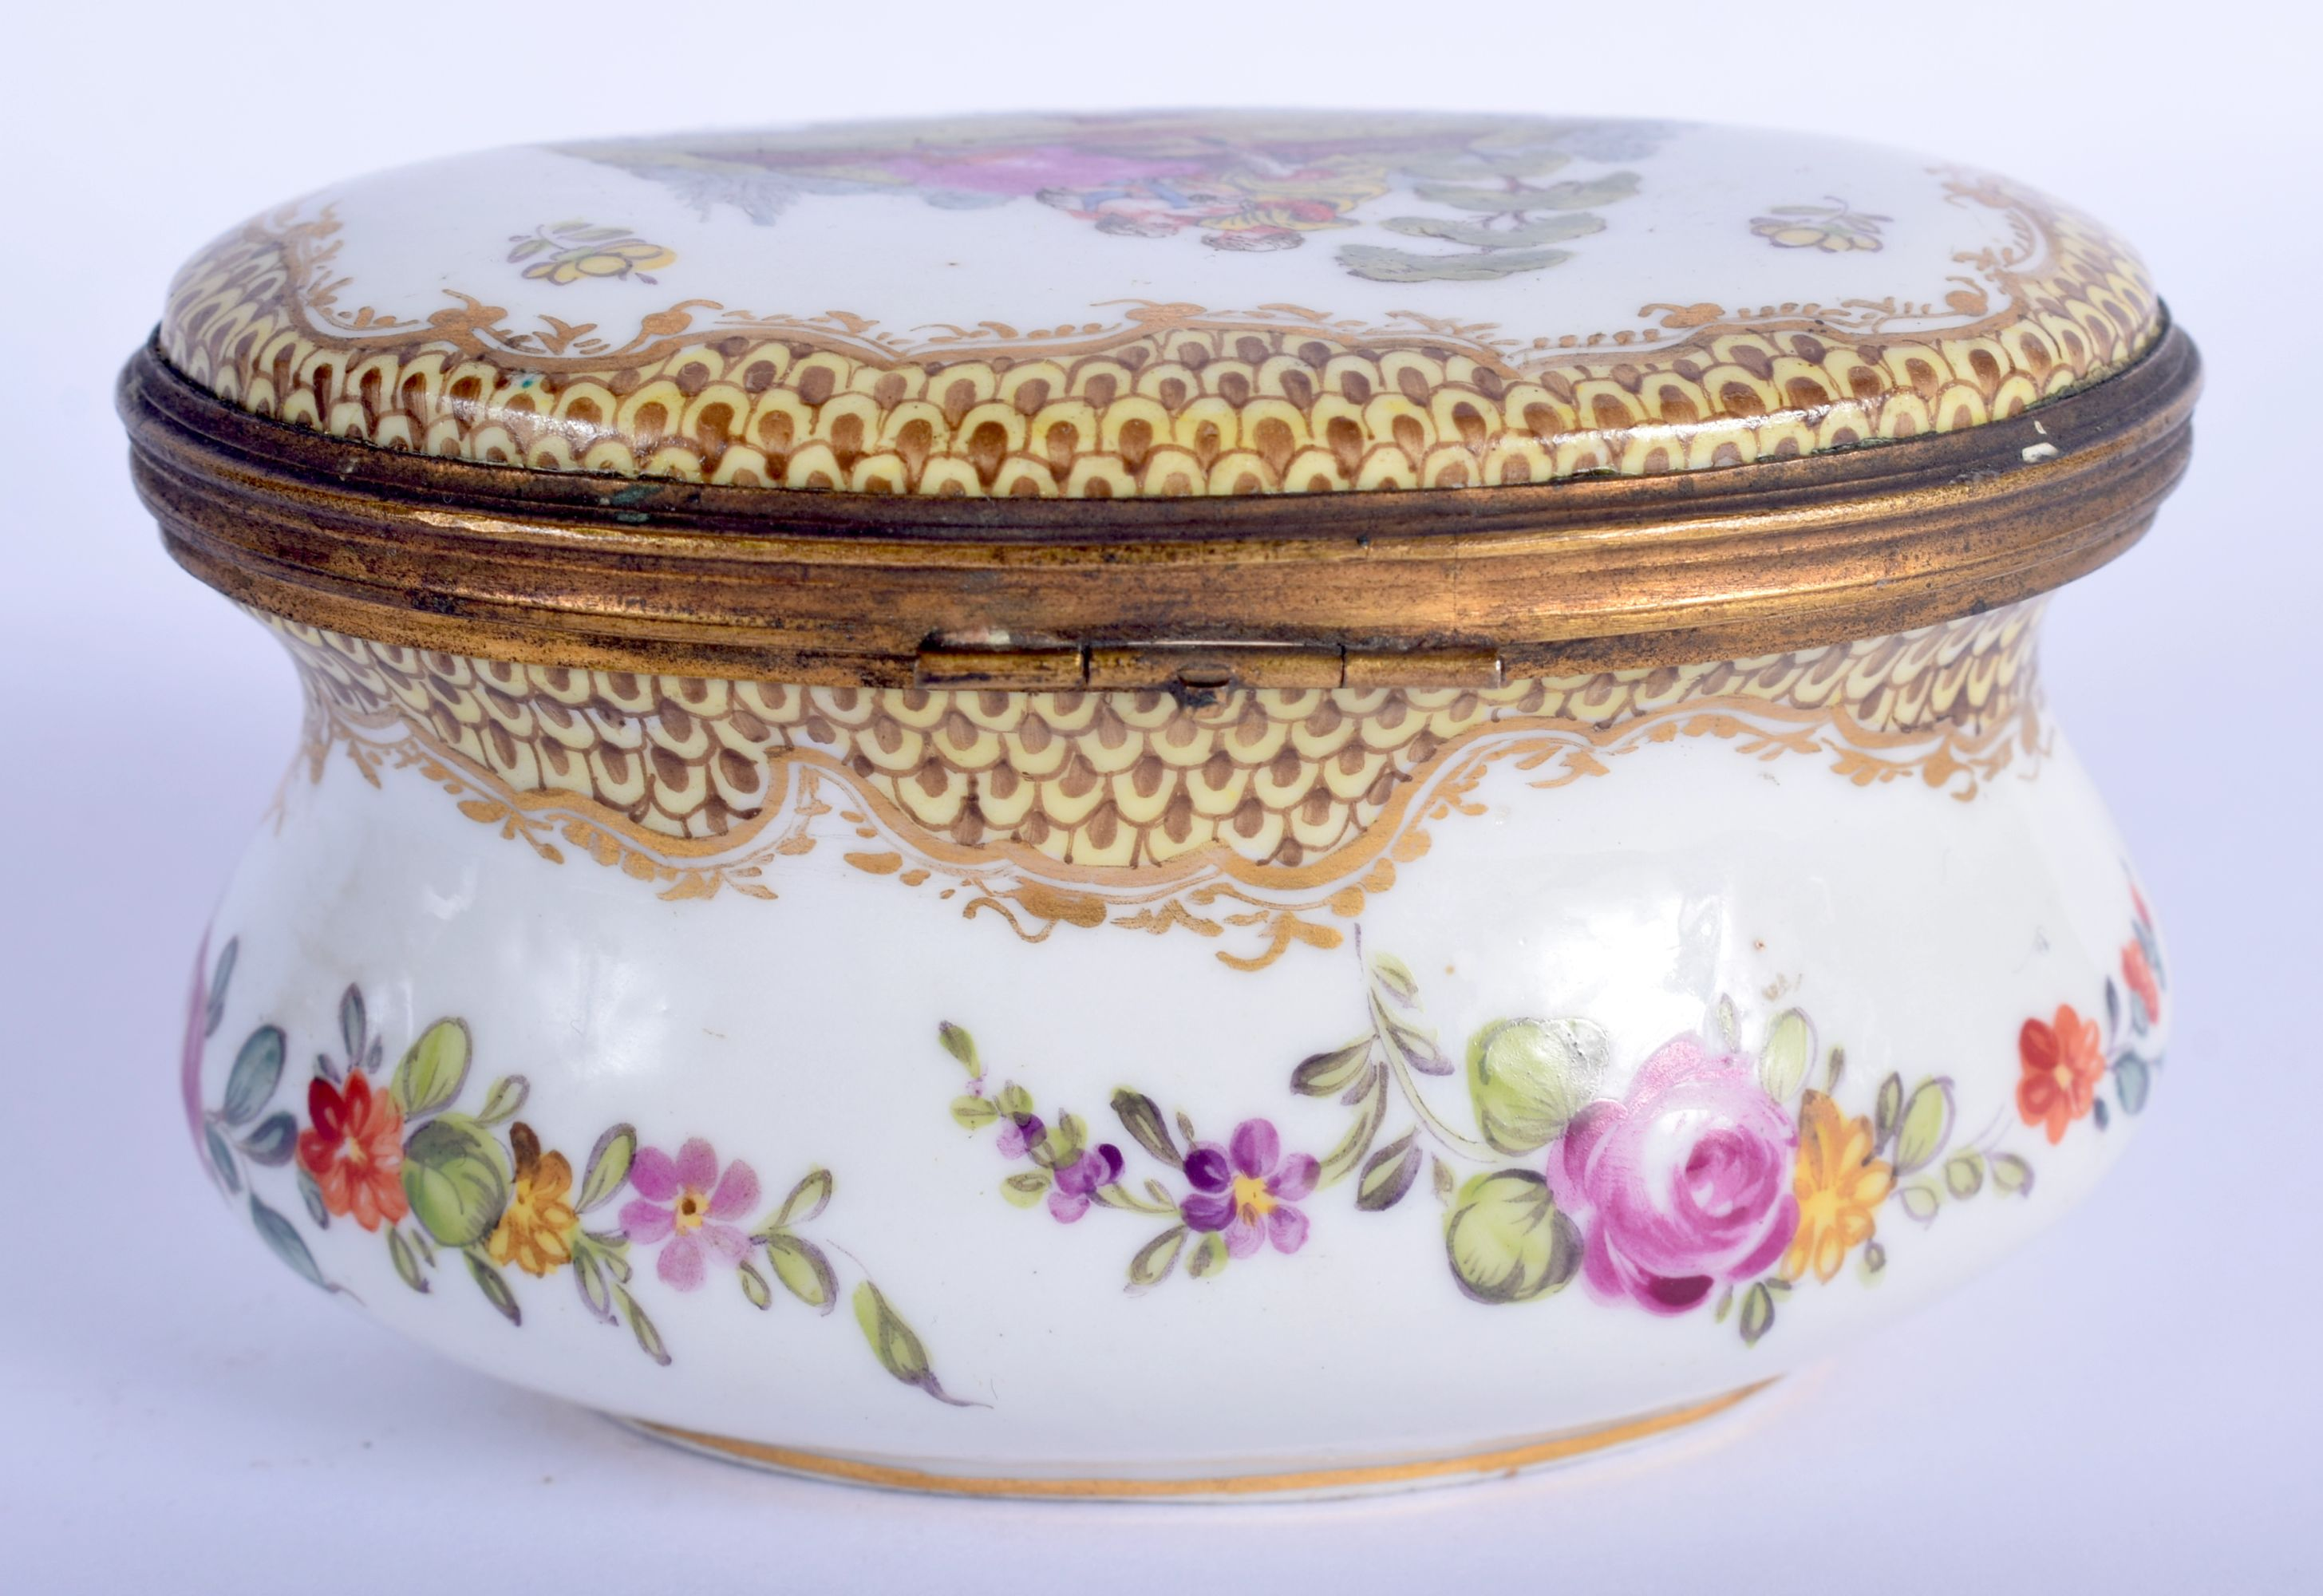 A 19TH CENTURY GERMAN HOSCHT PORCELAIN ENAMELLED BOX painted with figures within landscapes. 10 cm x - Image 2 of 5